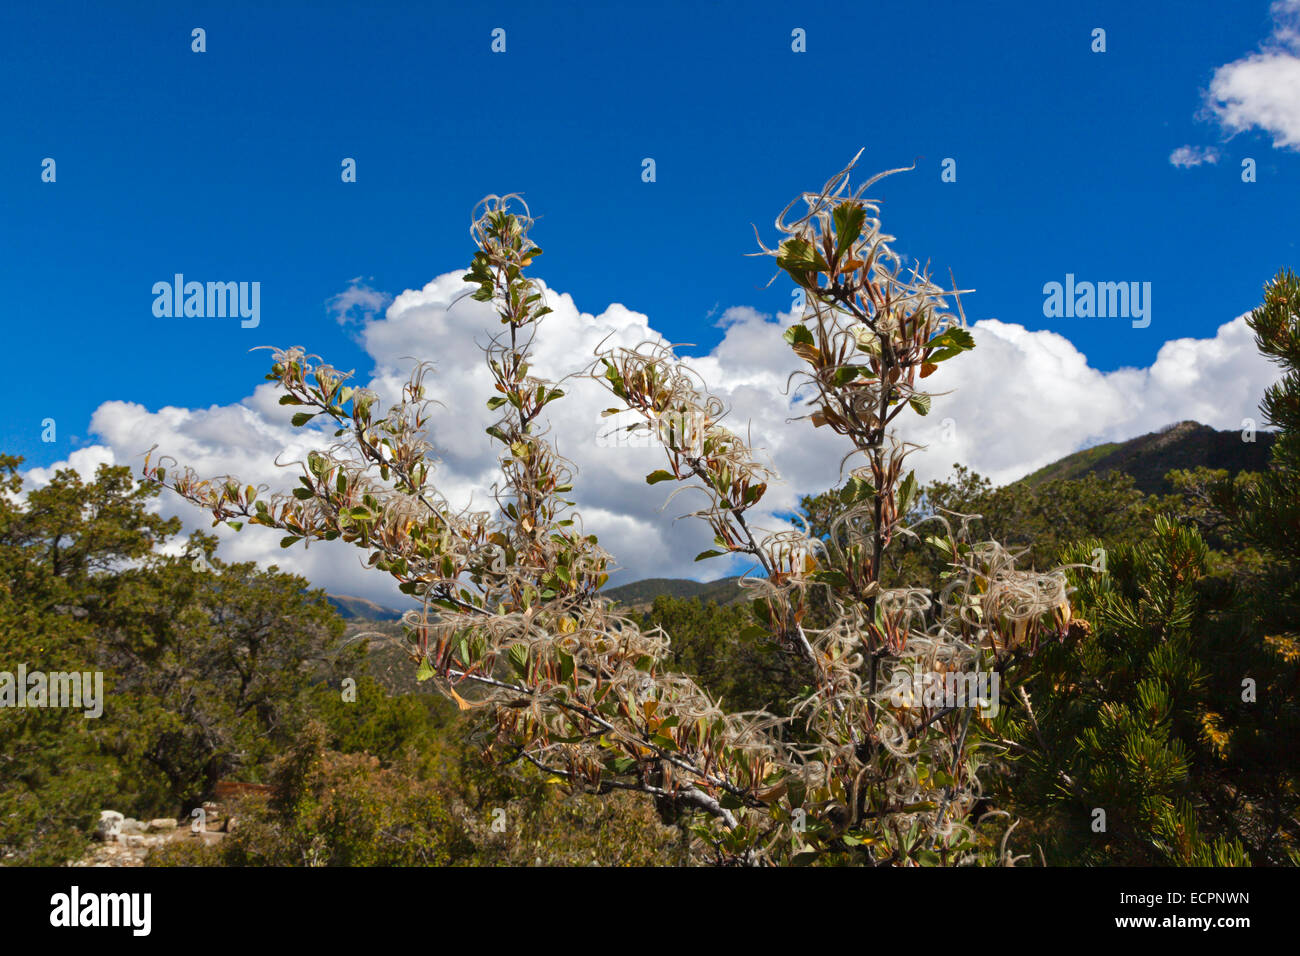 MOUNTAIN MAHOGONY (Cercocarpus montanus) seeds  in the Rocky Mountains - COLORADO Stock Photo